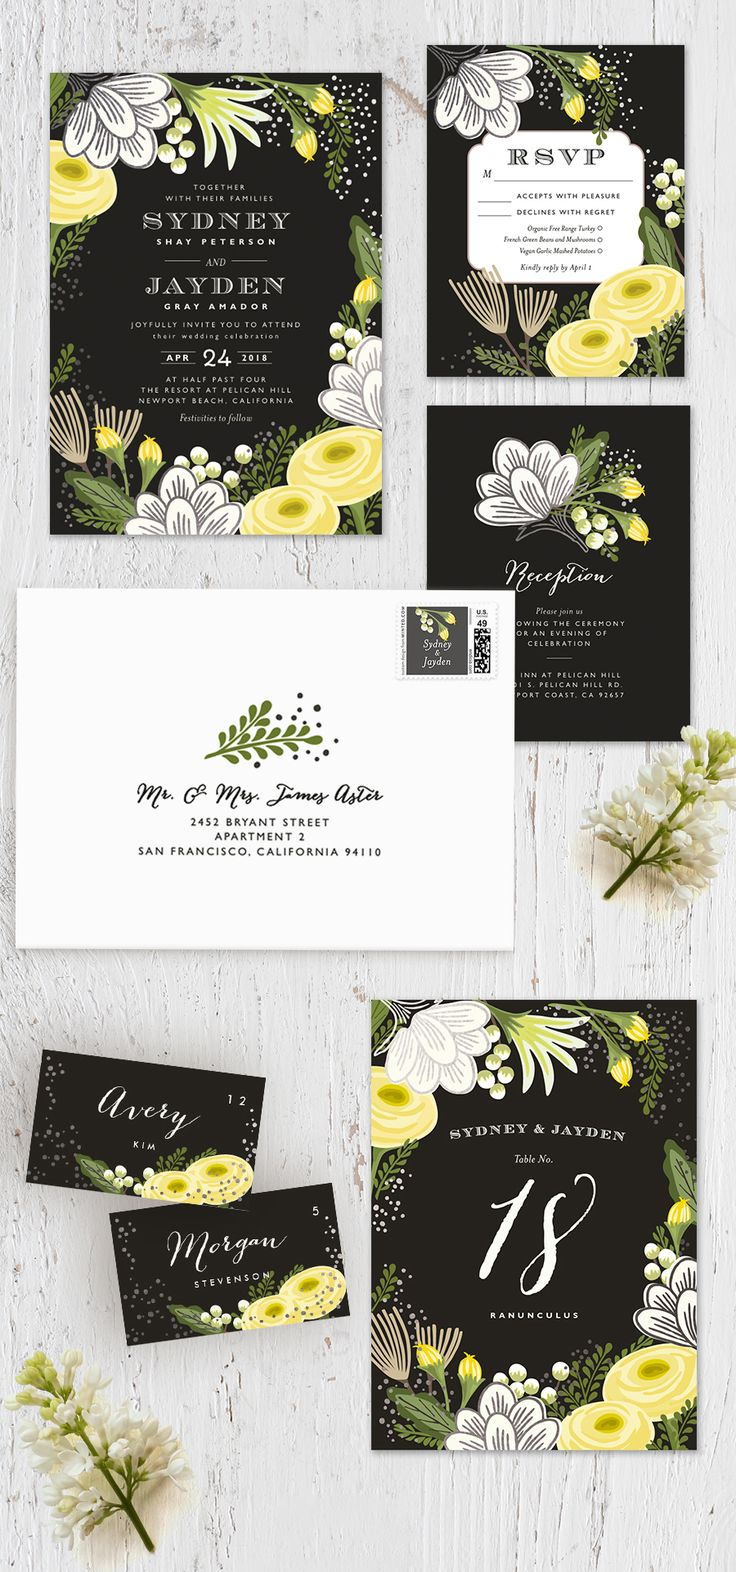 time wedding invitatiowording%0A Celebrate your spring time romance with   Bolero    Minted artist Griffinbell  Paper Co u    s gorgeous bright floral infused gold foil wedding invitation